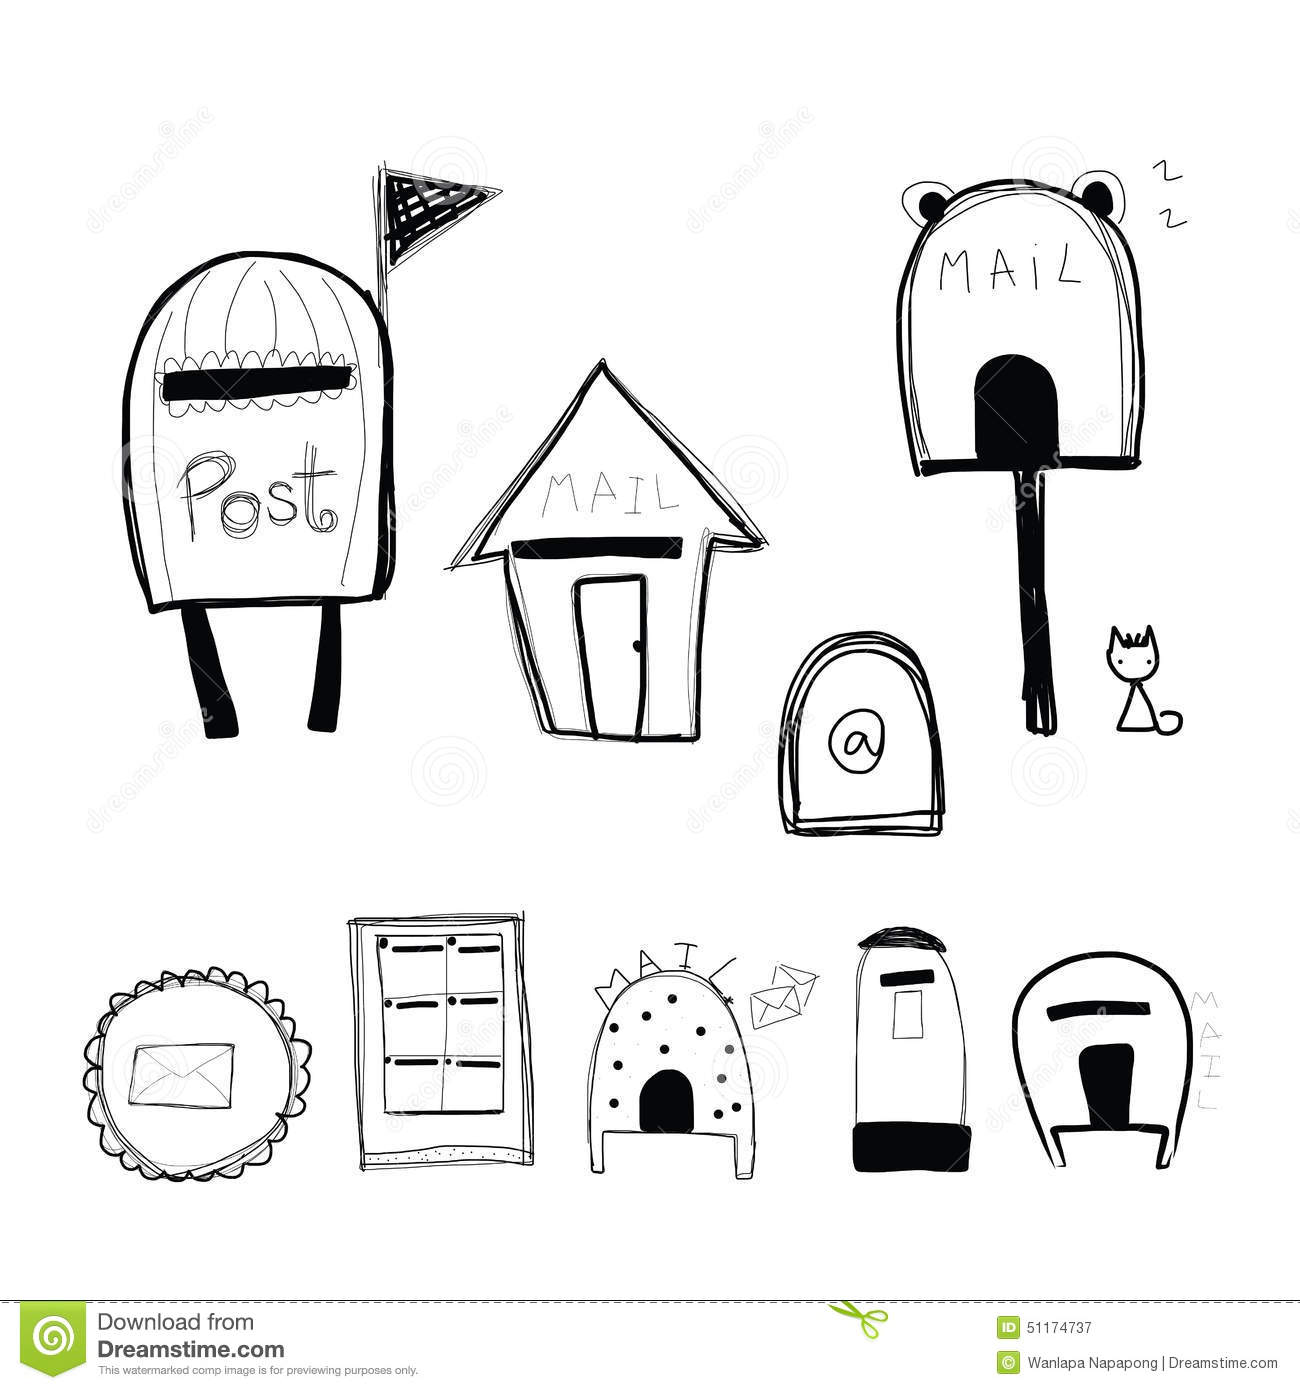 Doodle Style Mailbox And Post Box Stock Vector